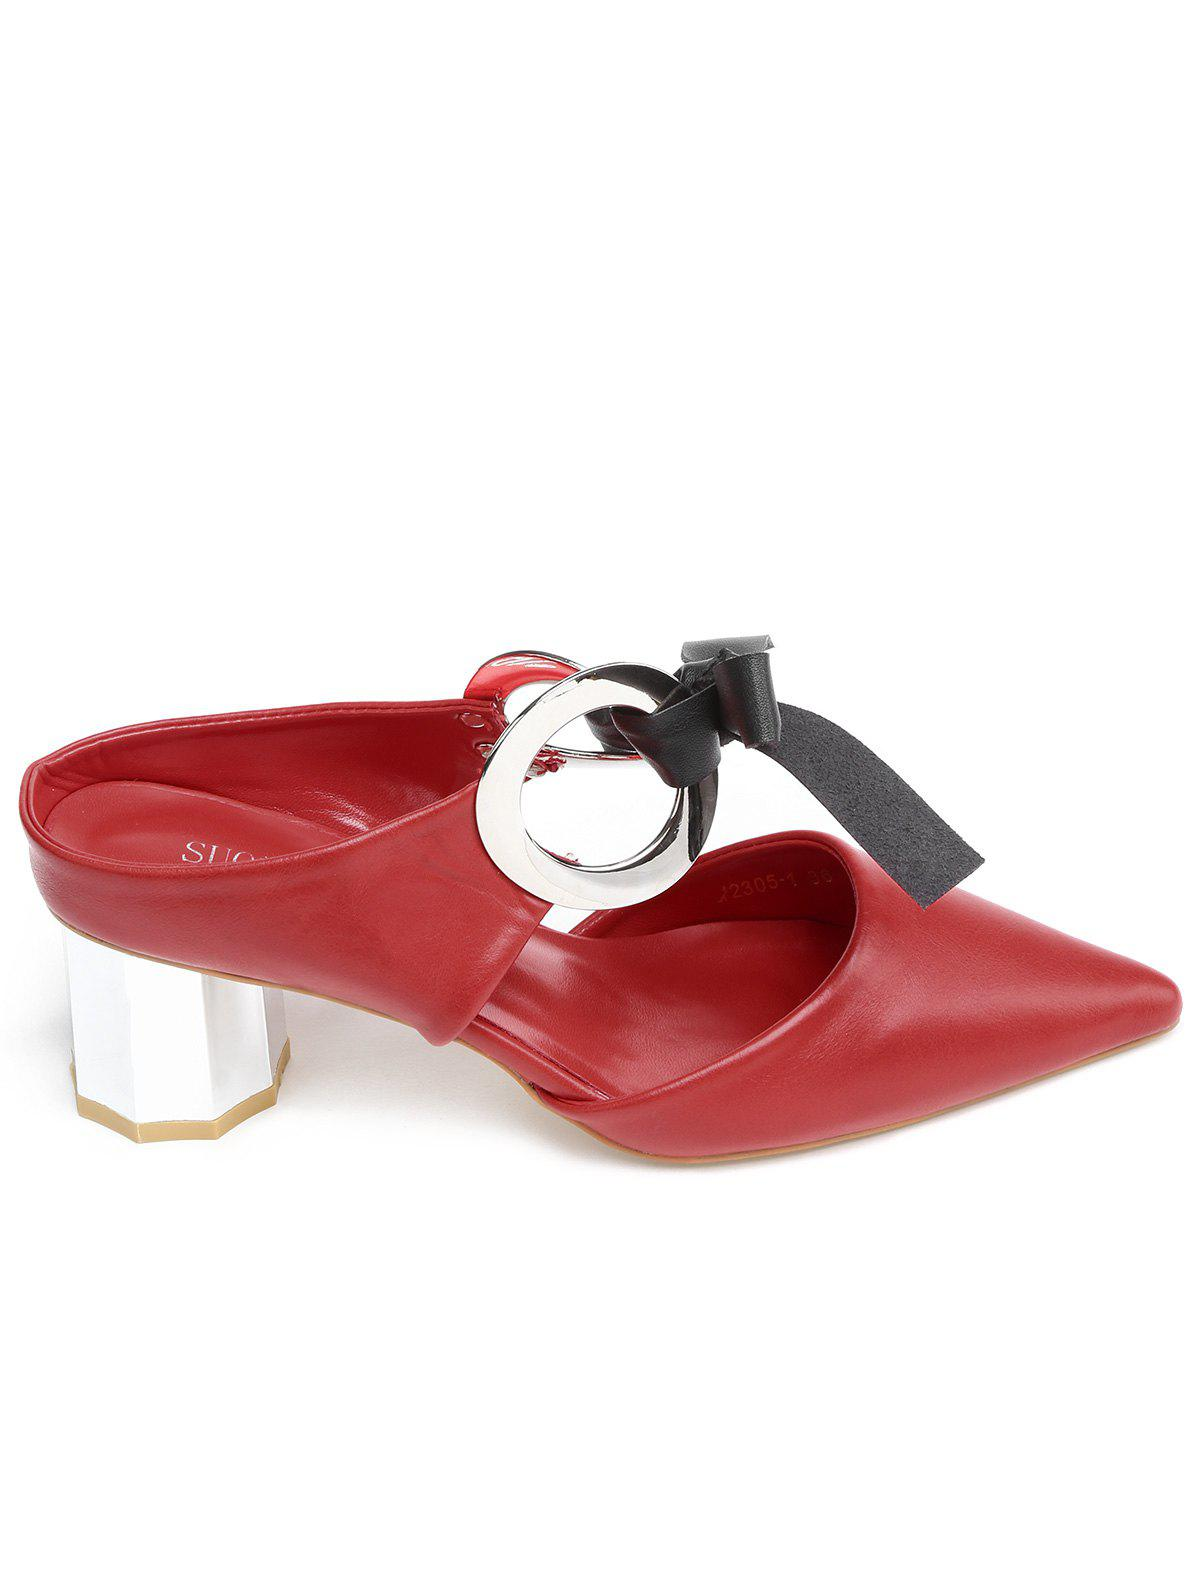 Point Toe Bowknot PU Leather Block Heel Sandals - LOVE RED 35